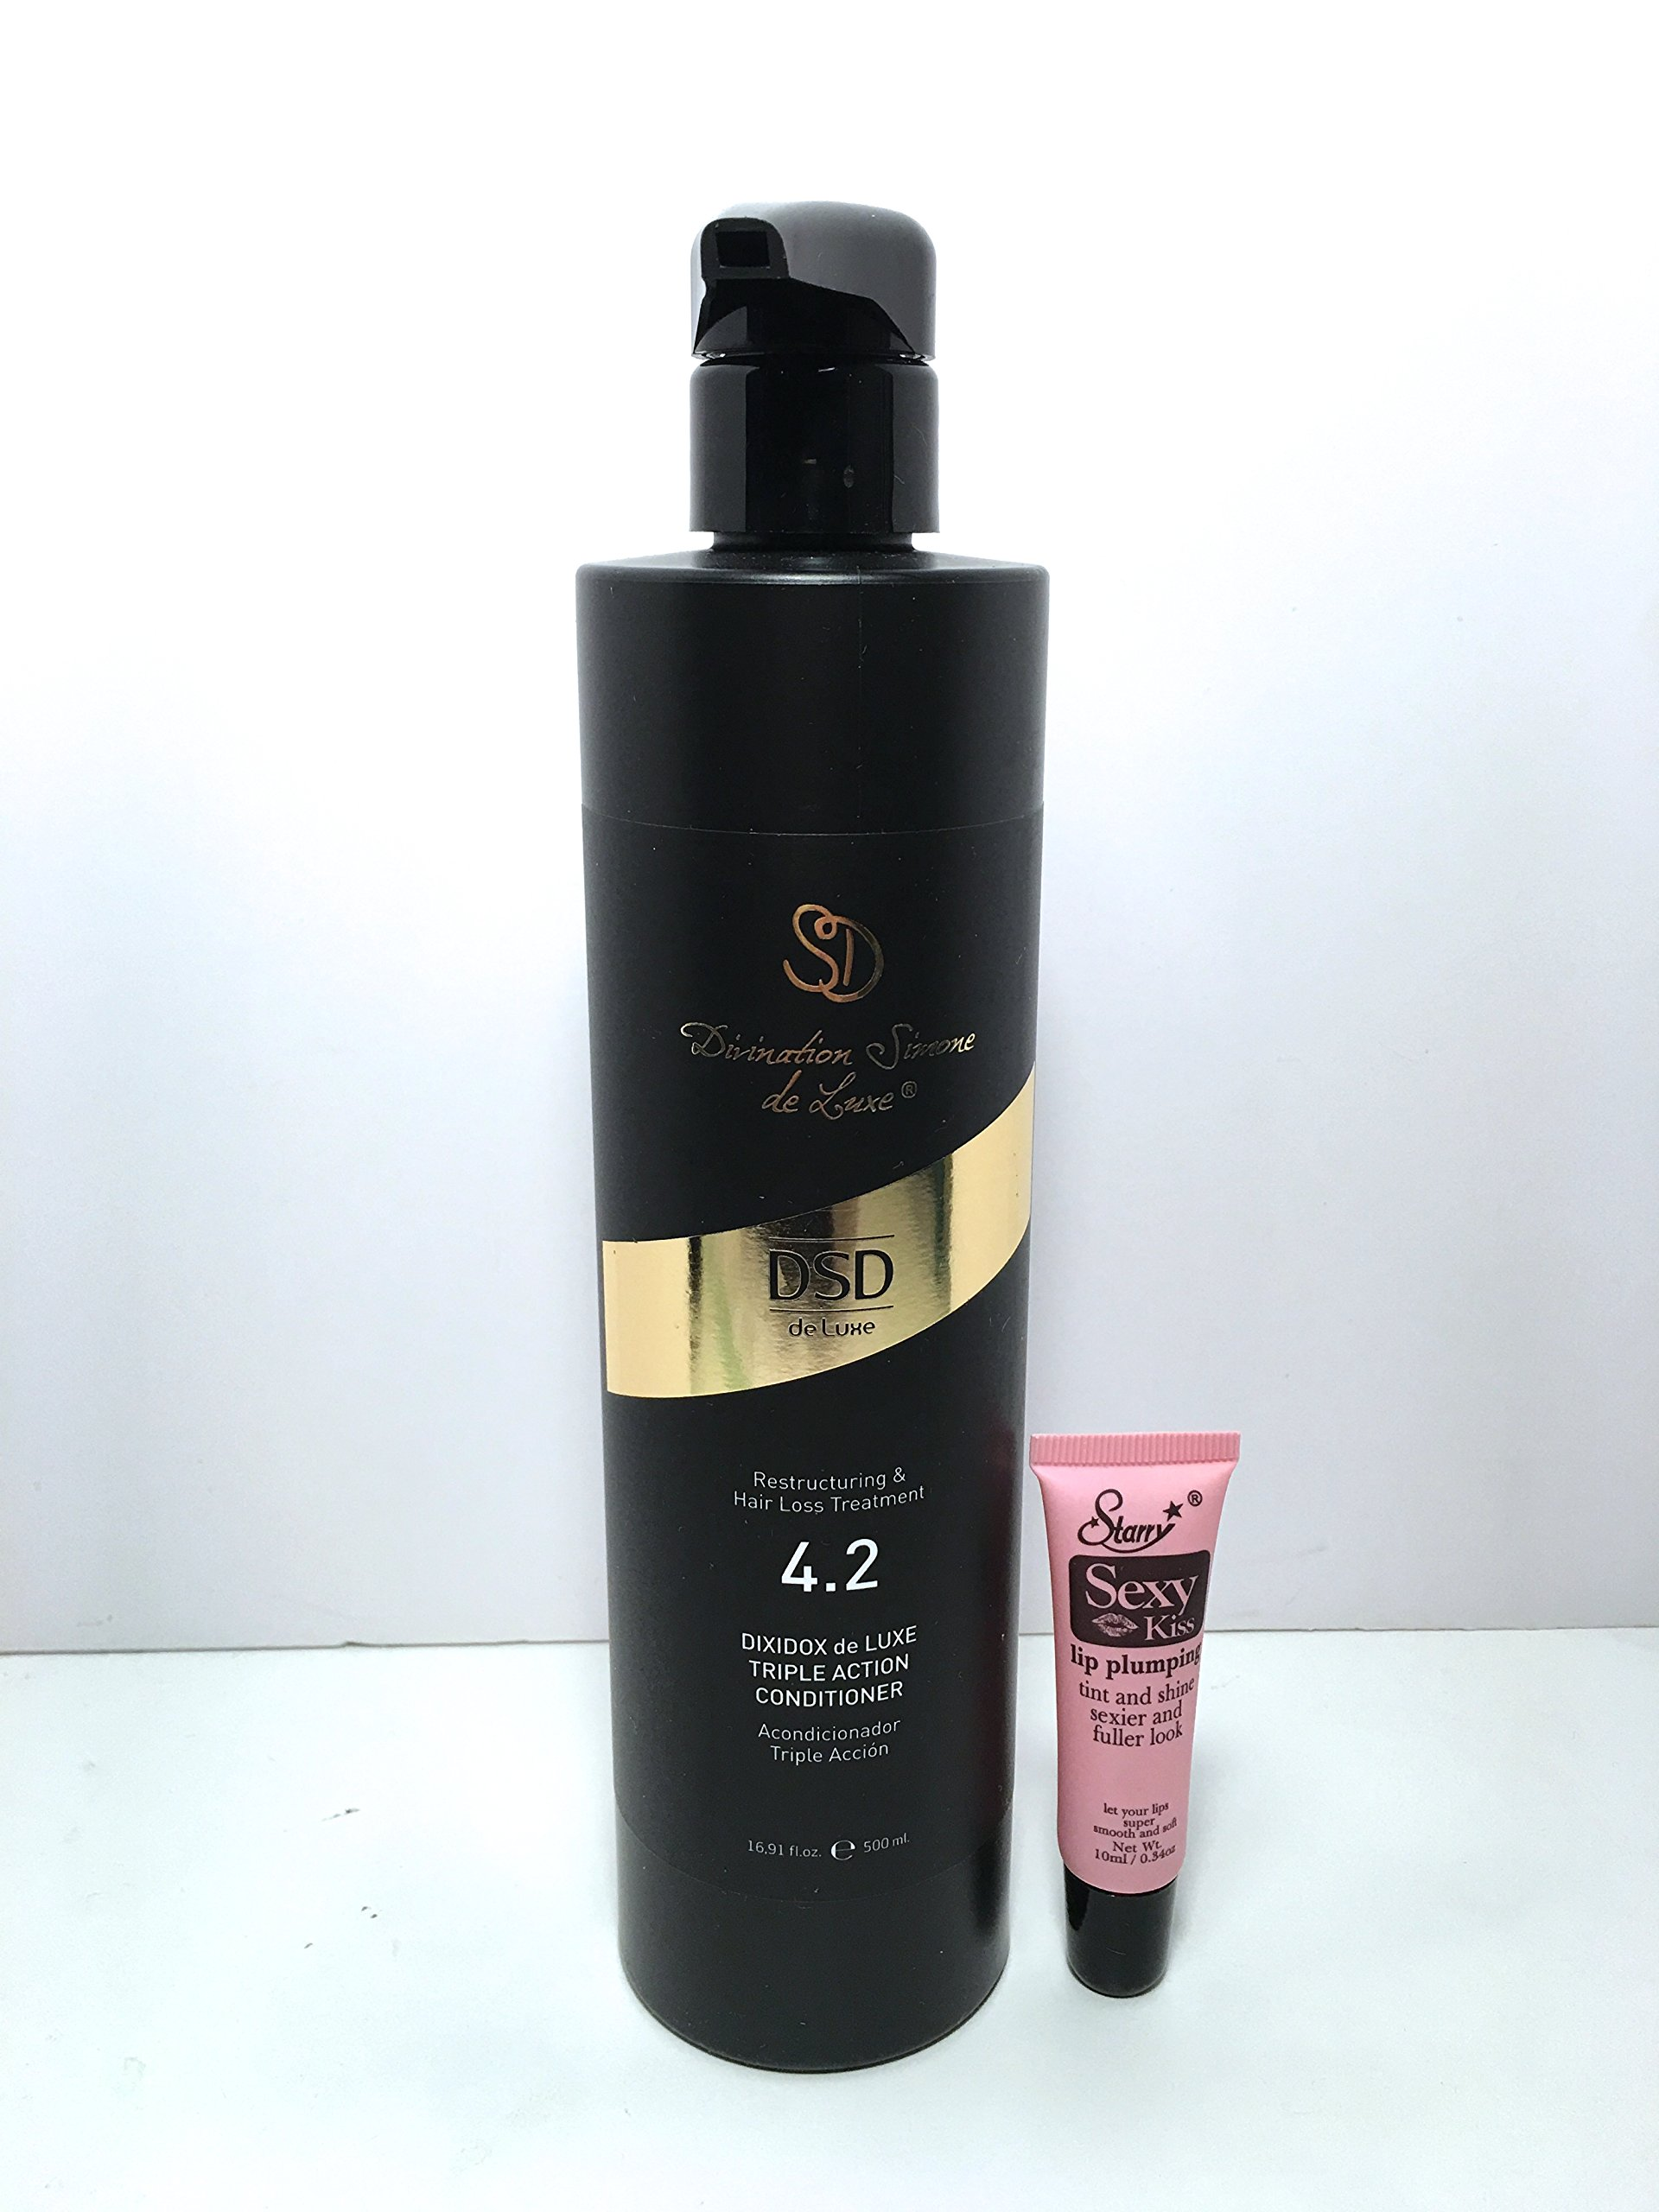 Divination Simone De Luxe Dixidox 4.2 Triple Action Conditioner 16.9oz